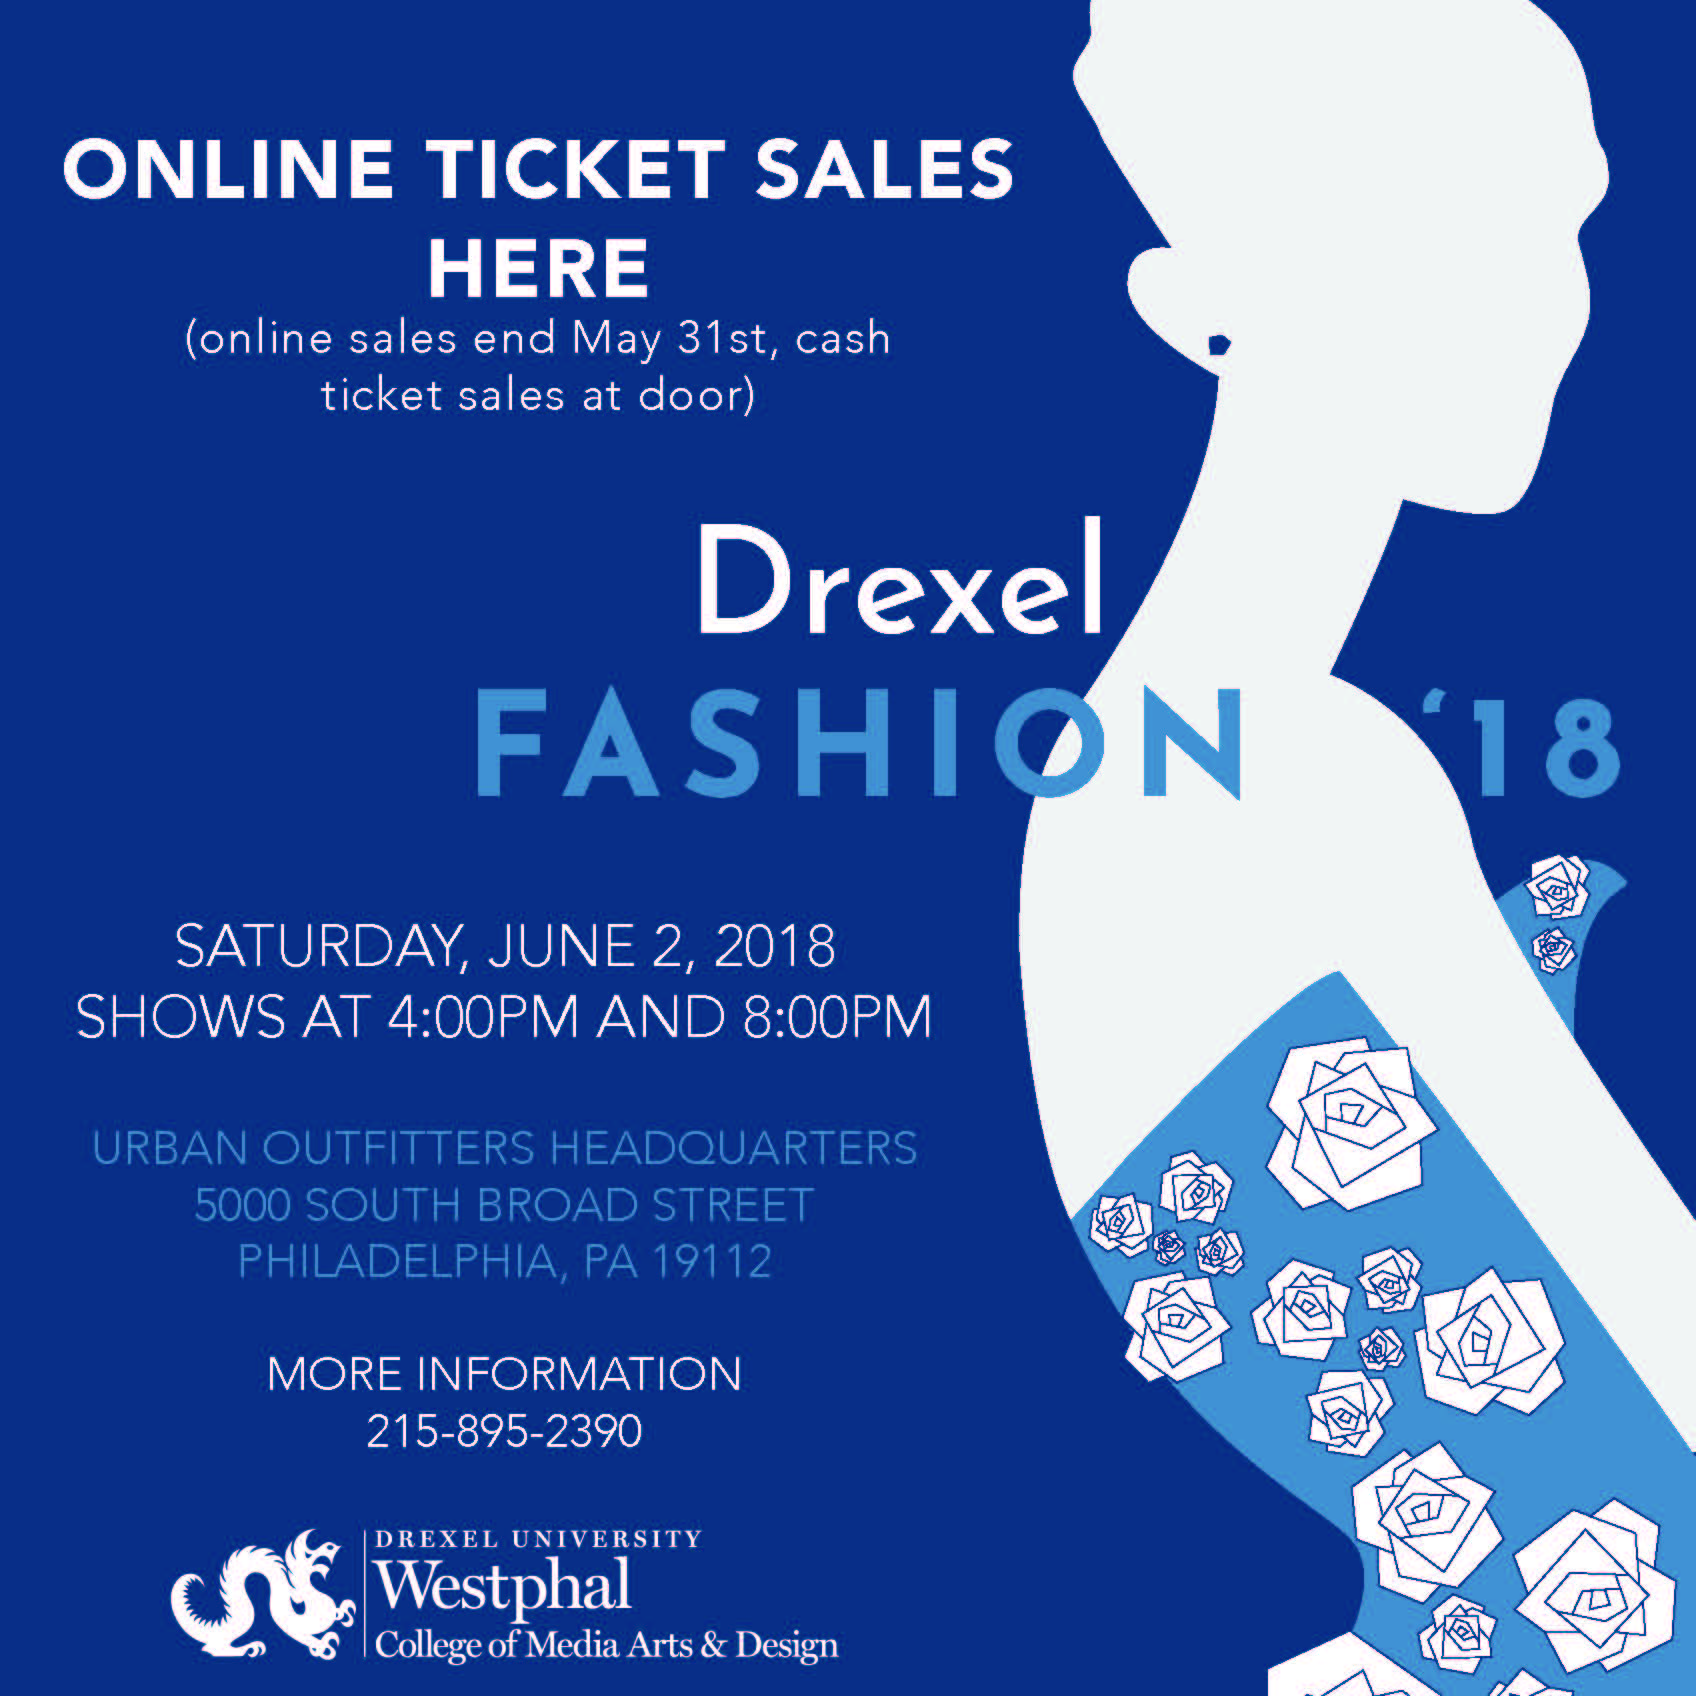 Drexel Fashion Show